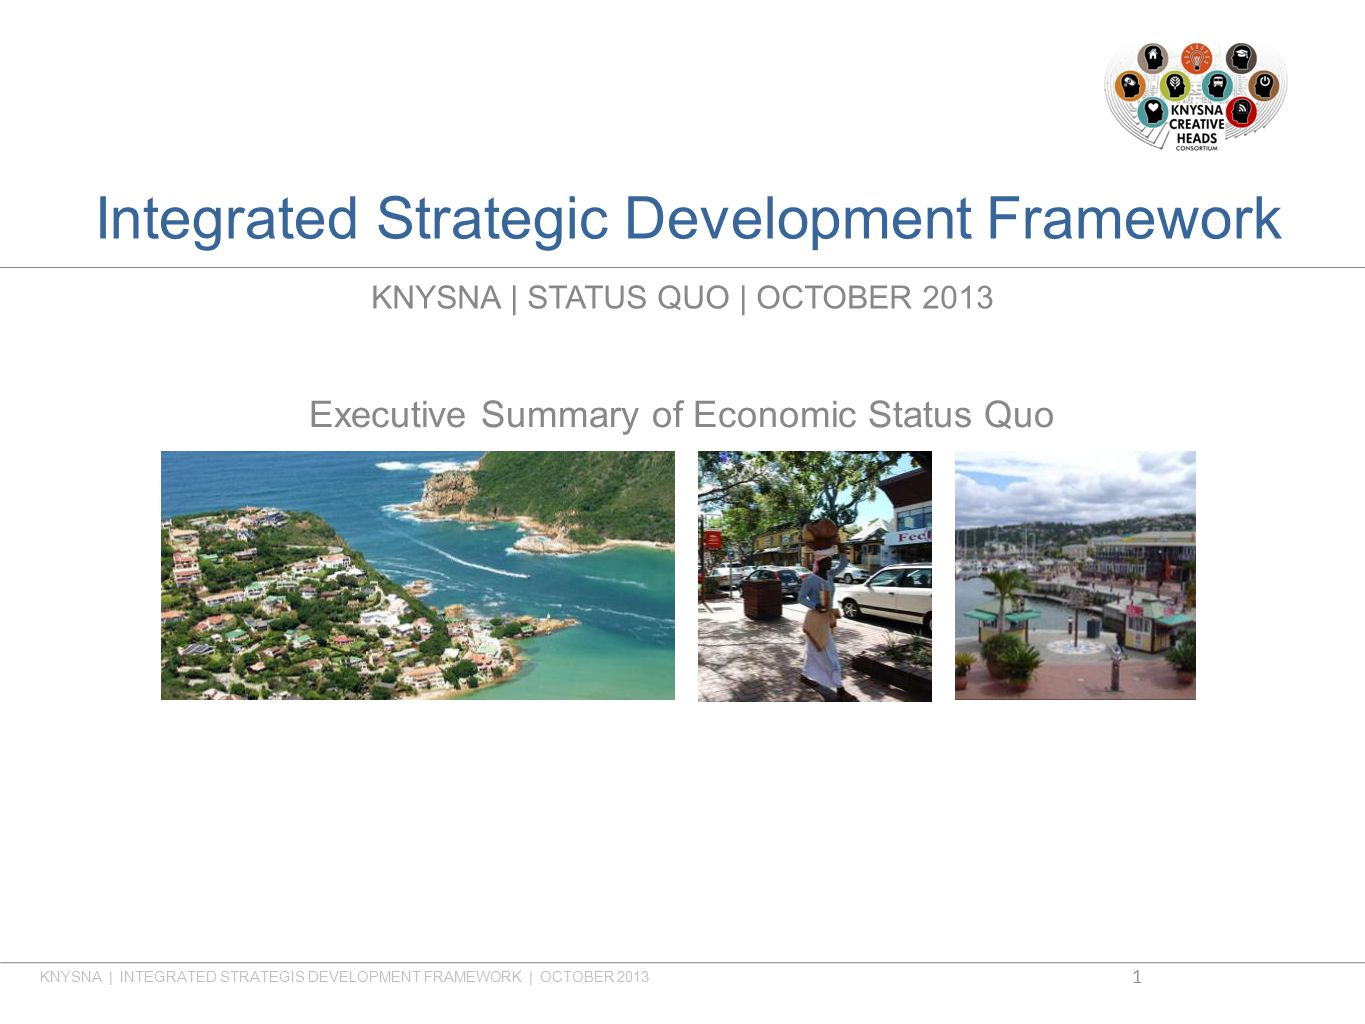 Integrated Strategic Development Framework KNYSNA | STATUS QUO | OCTOBER 2013 Executive Summary of Economic Status Quo KNYSNA | INTEGRATED STRATEGIS DEVELOPMENT FRAMEWORK | OCTOBER 2013 1